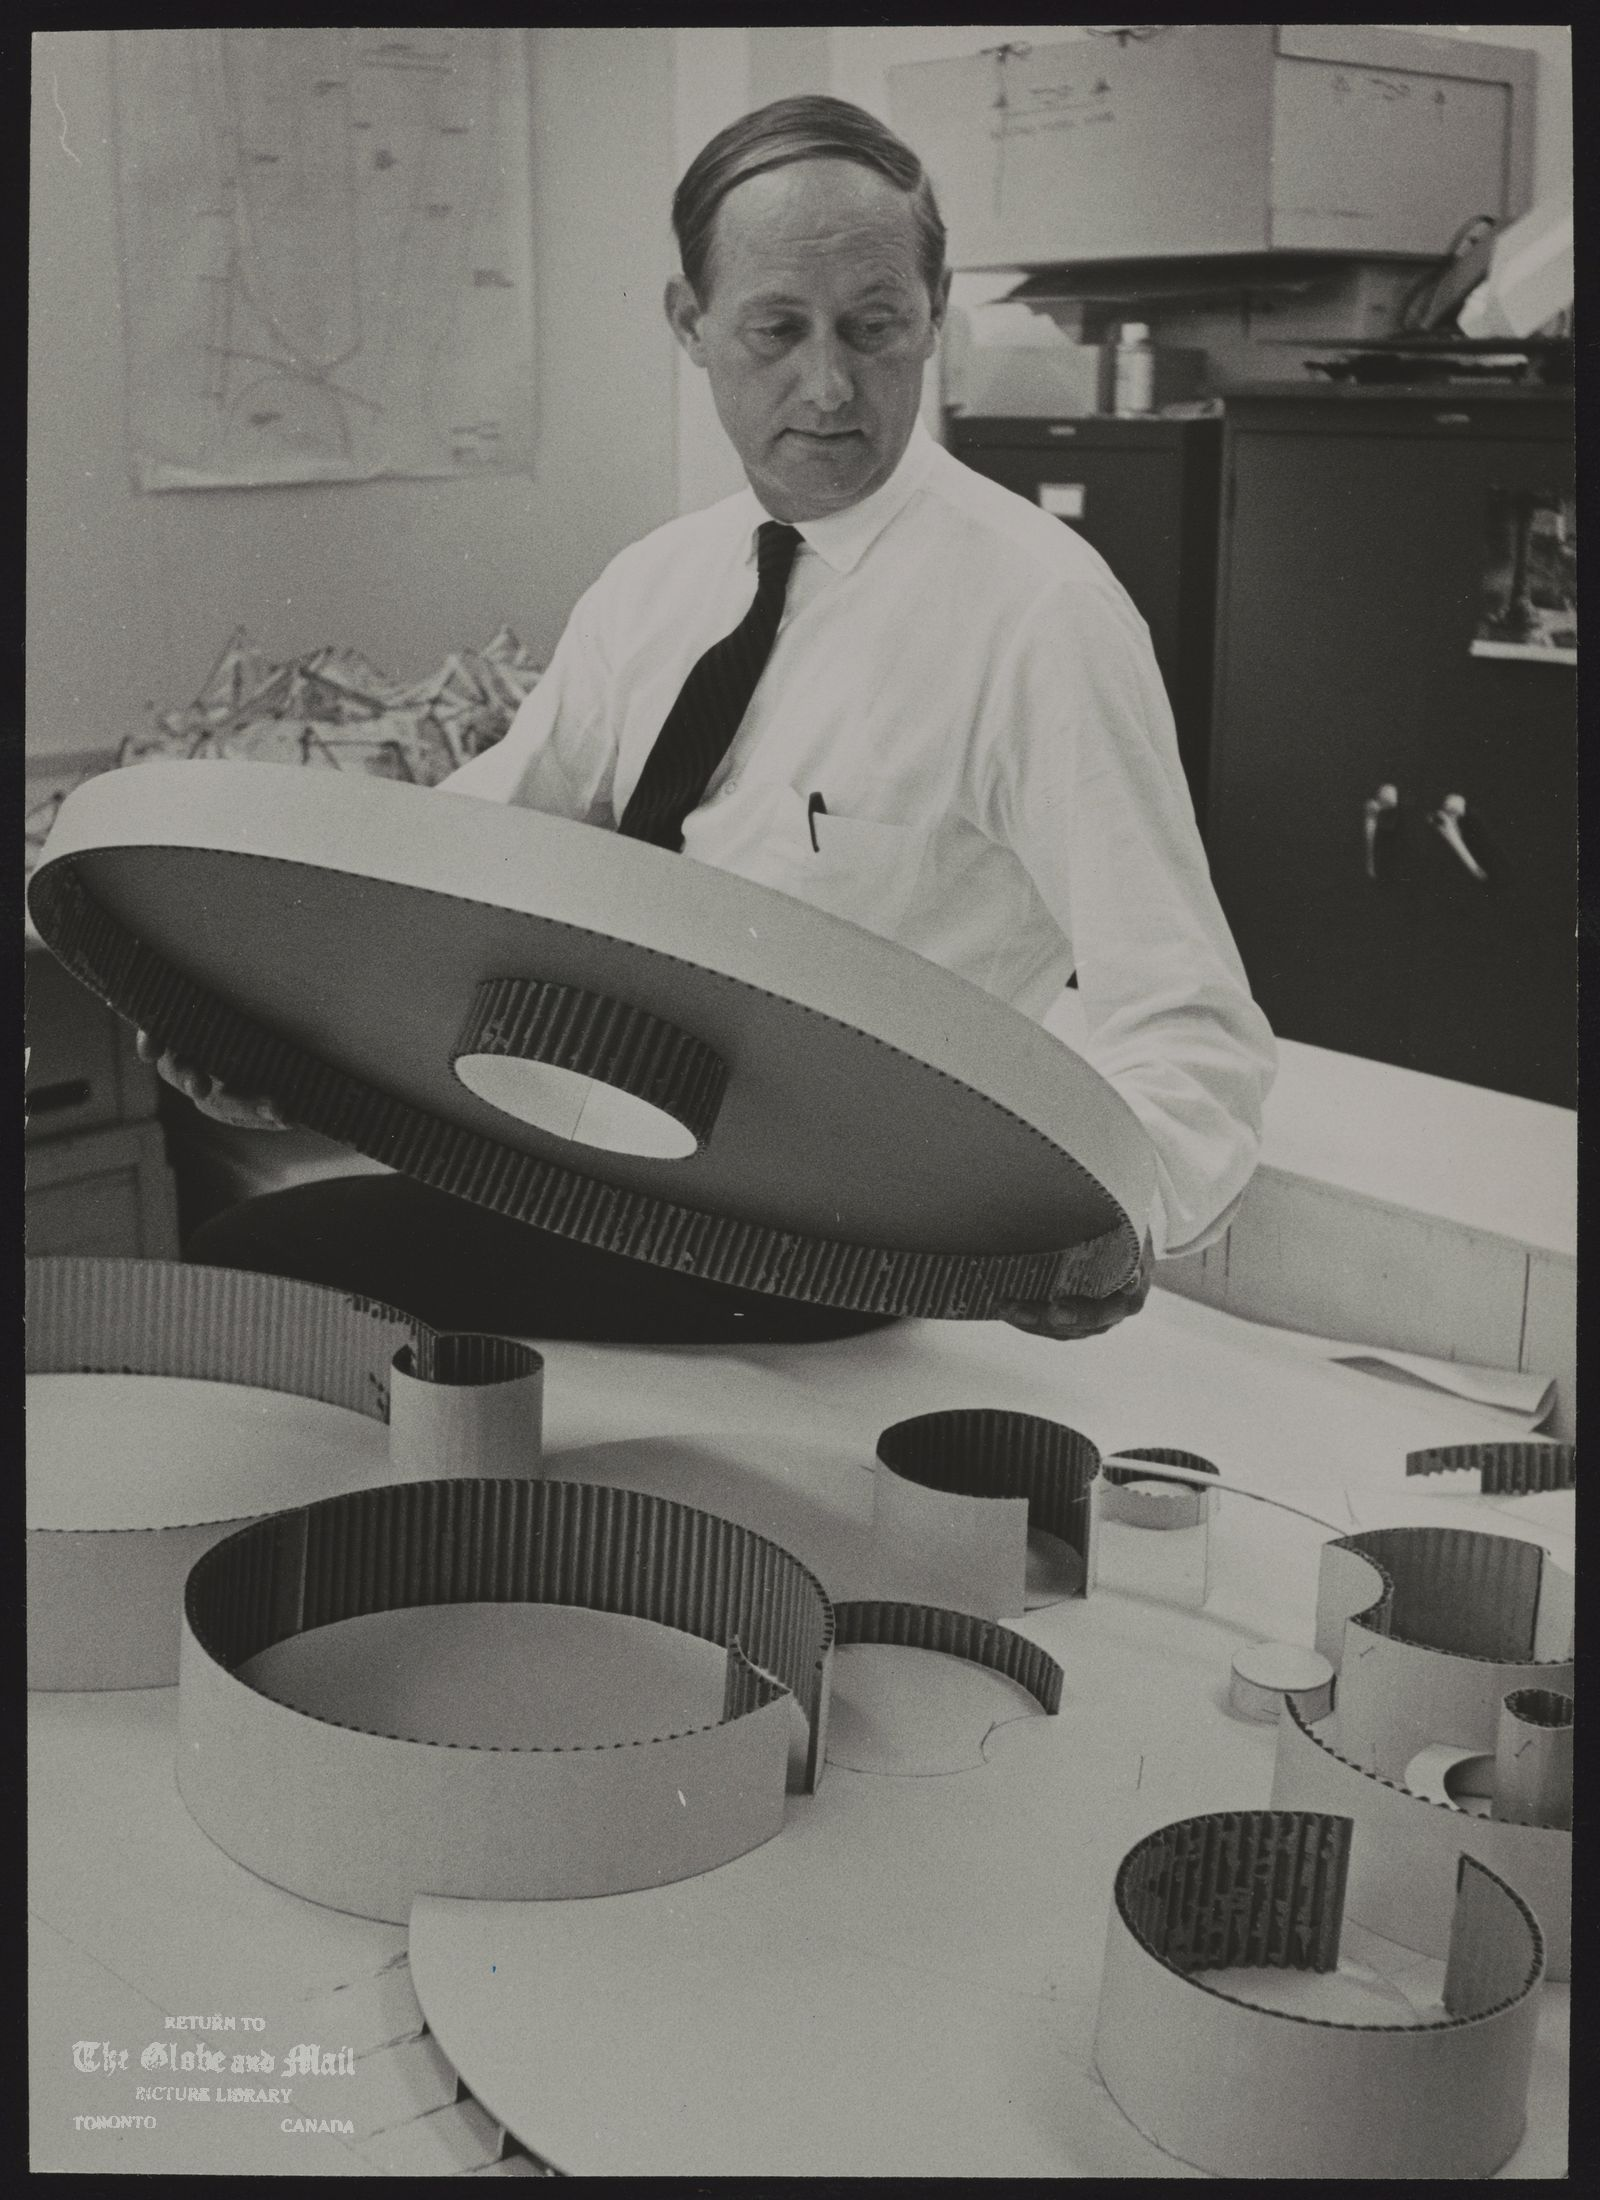 Robert FAIRFIELD Toronto. Architect Stratford Theatre designer Robert Fairfield, works on model for industrial pavilion for Expo' 67.